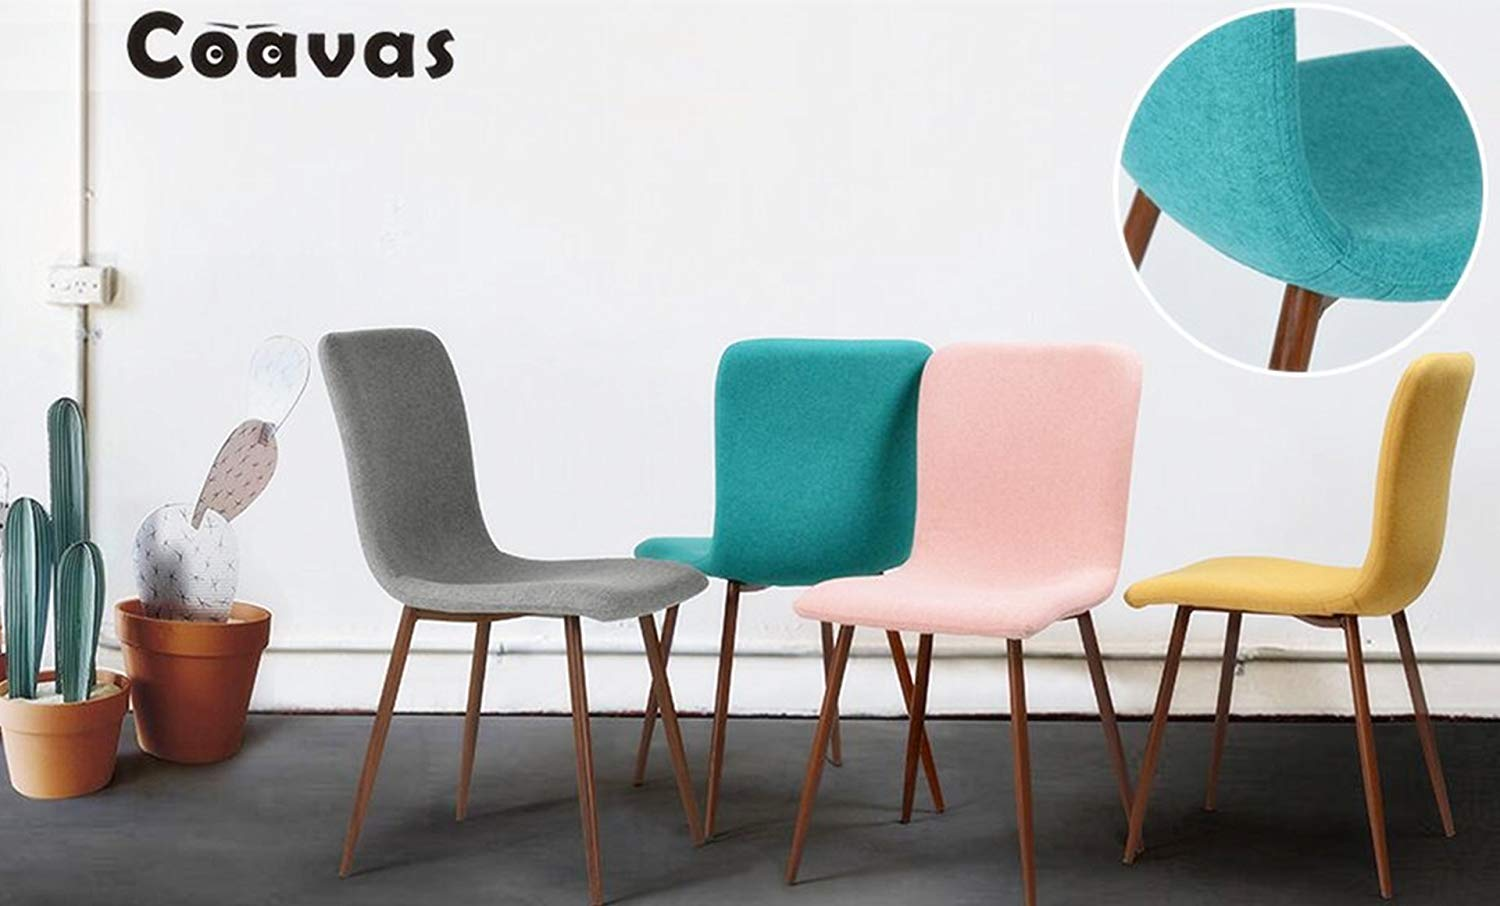 Wondrous Top 10 Best Set Of 4 Dining Chairs In 2019 A Shopping Guide Bralicious Painted Fabric Chair Ideas Braliciousco